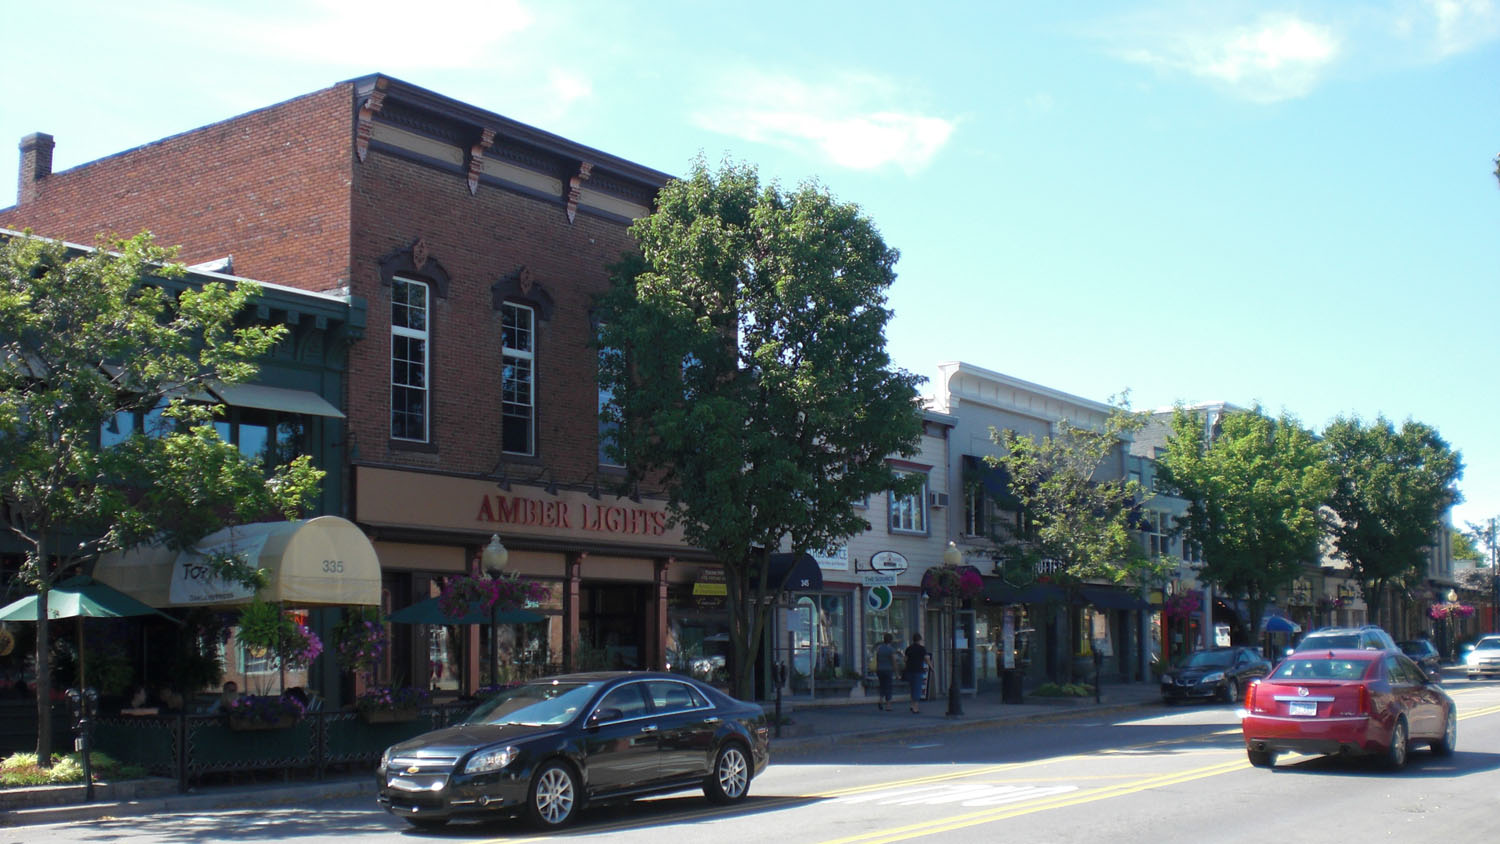 Vibrancy - Clermont County residents enjoy a high quality of life that includes a rich variety of leisure activities, beautiful neighborhoods, support for children, and opportunities to develop a sense of belonging and community.